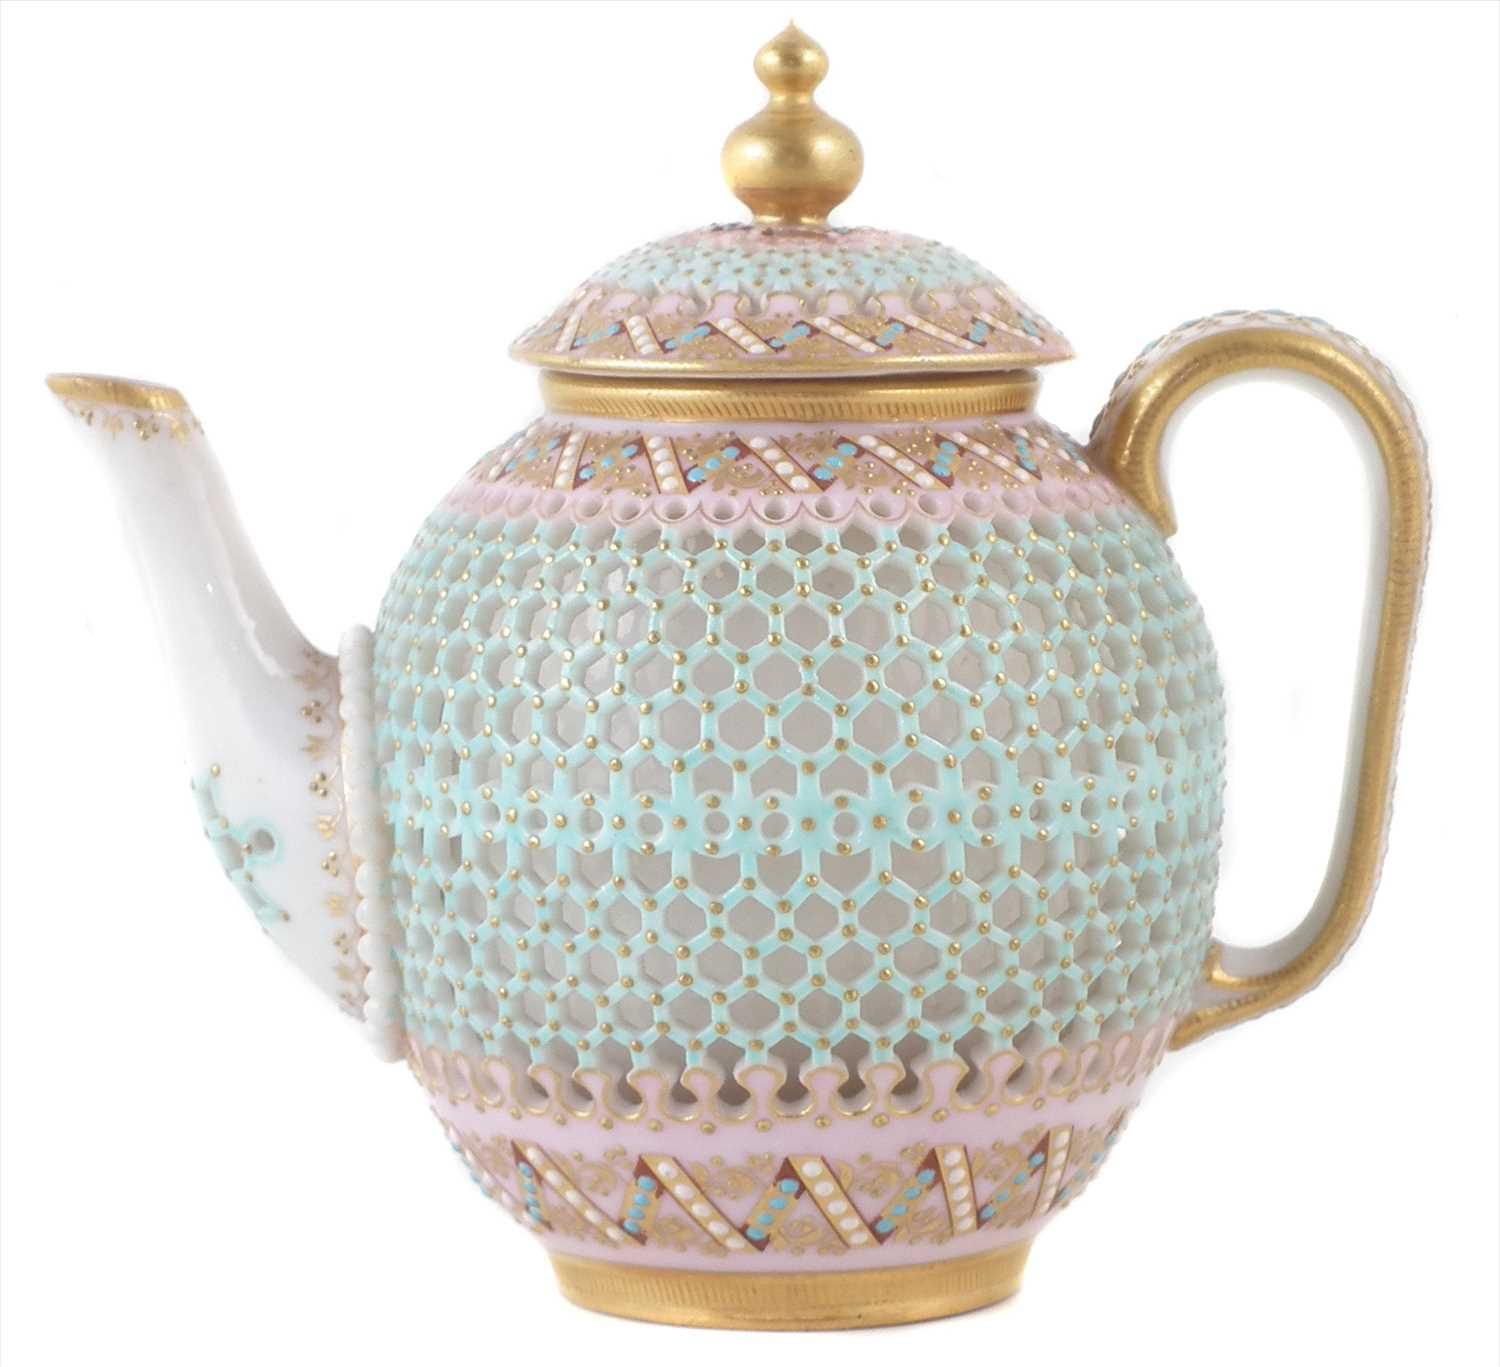 163 - Royal Worcester reticulated teapot and cover by George Owen,